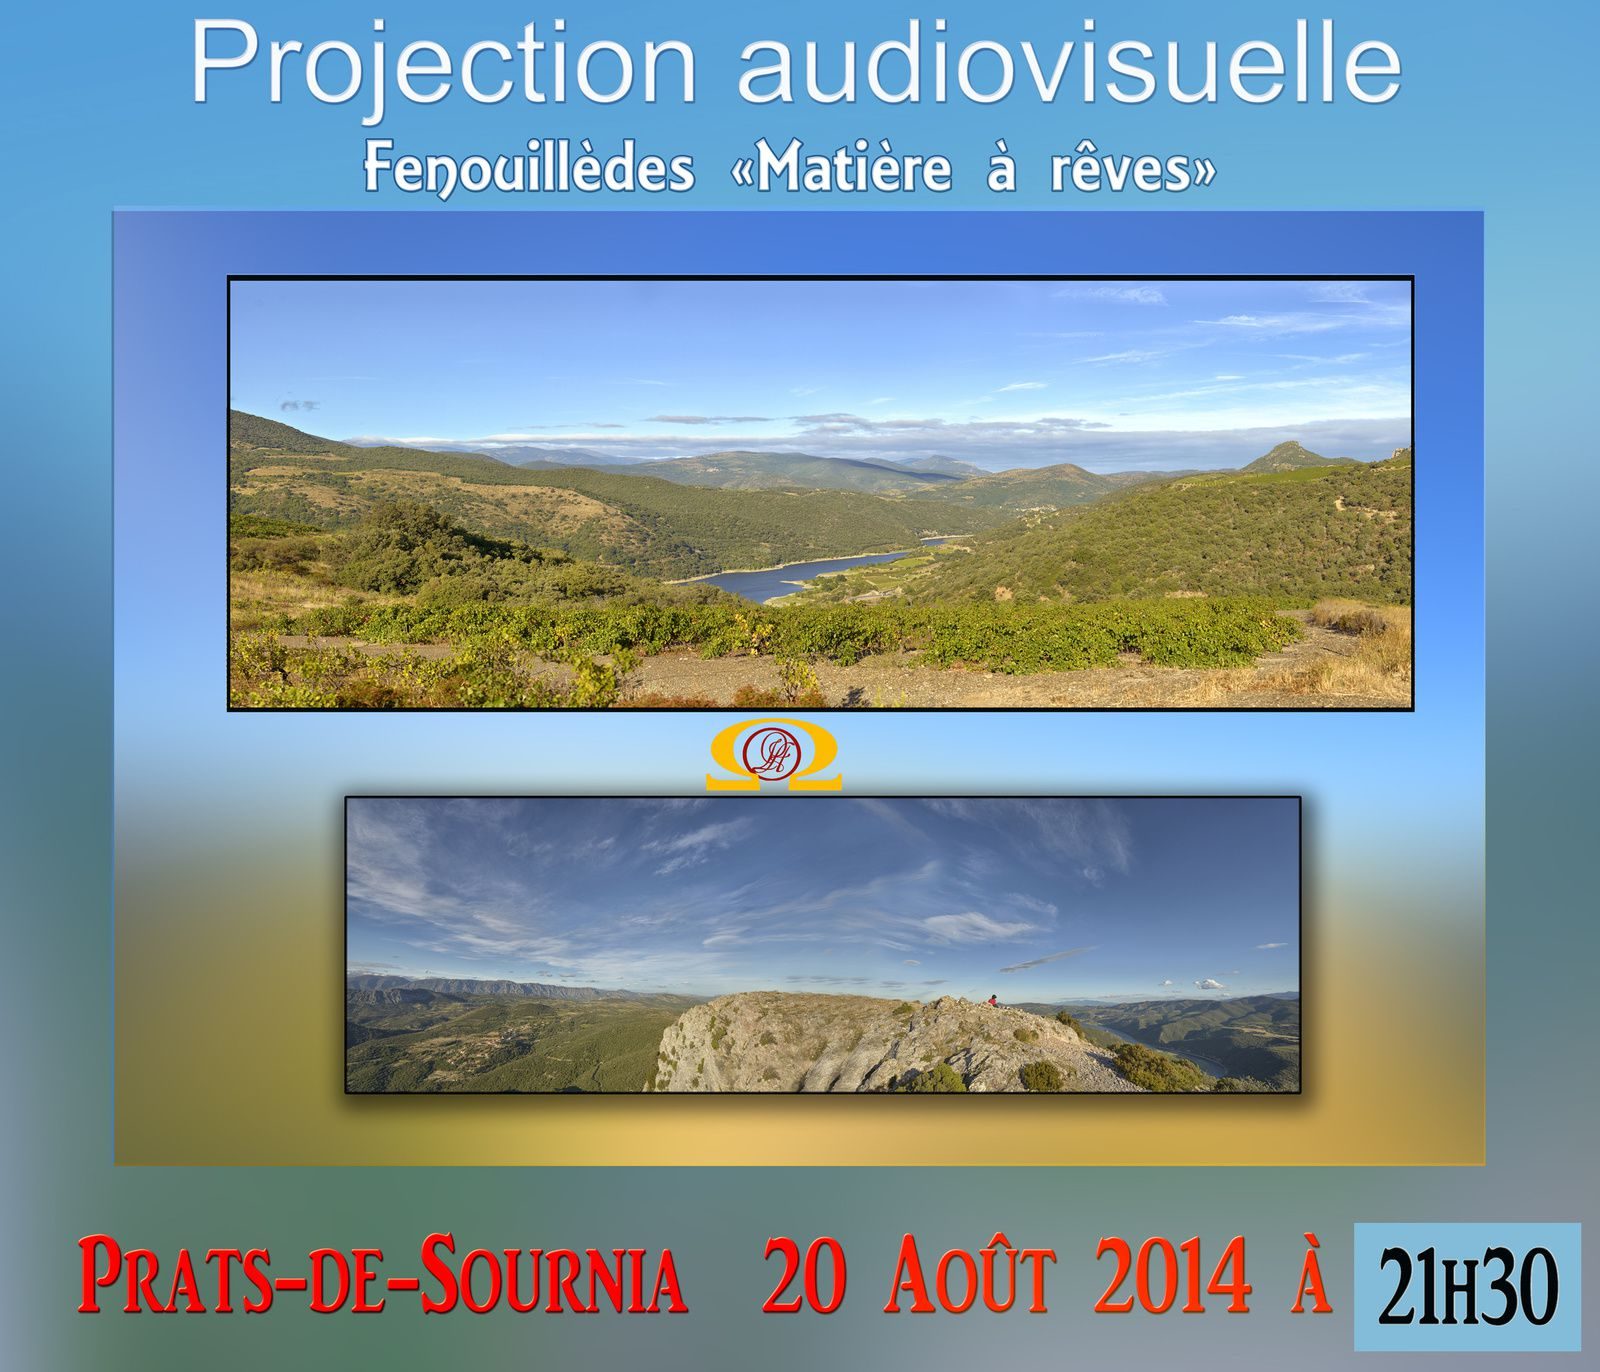 projection audiovisuele à Prats-de-Sournia.